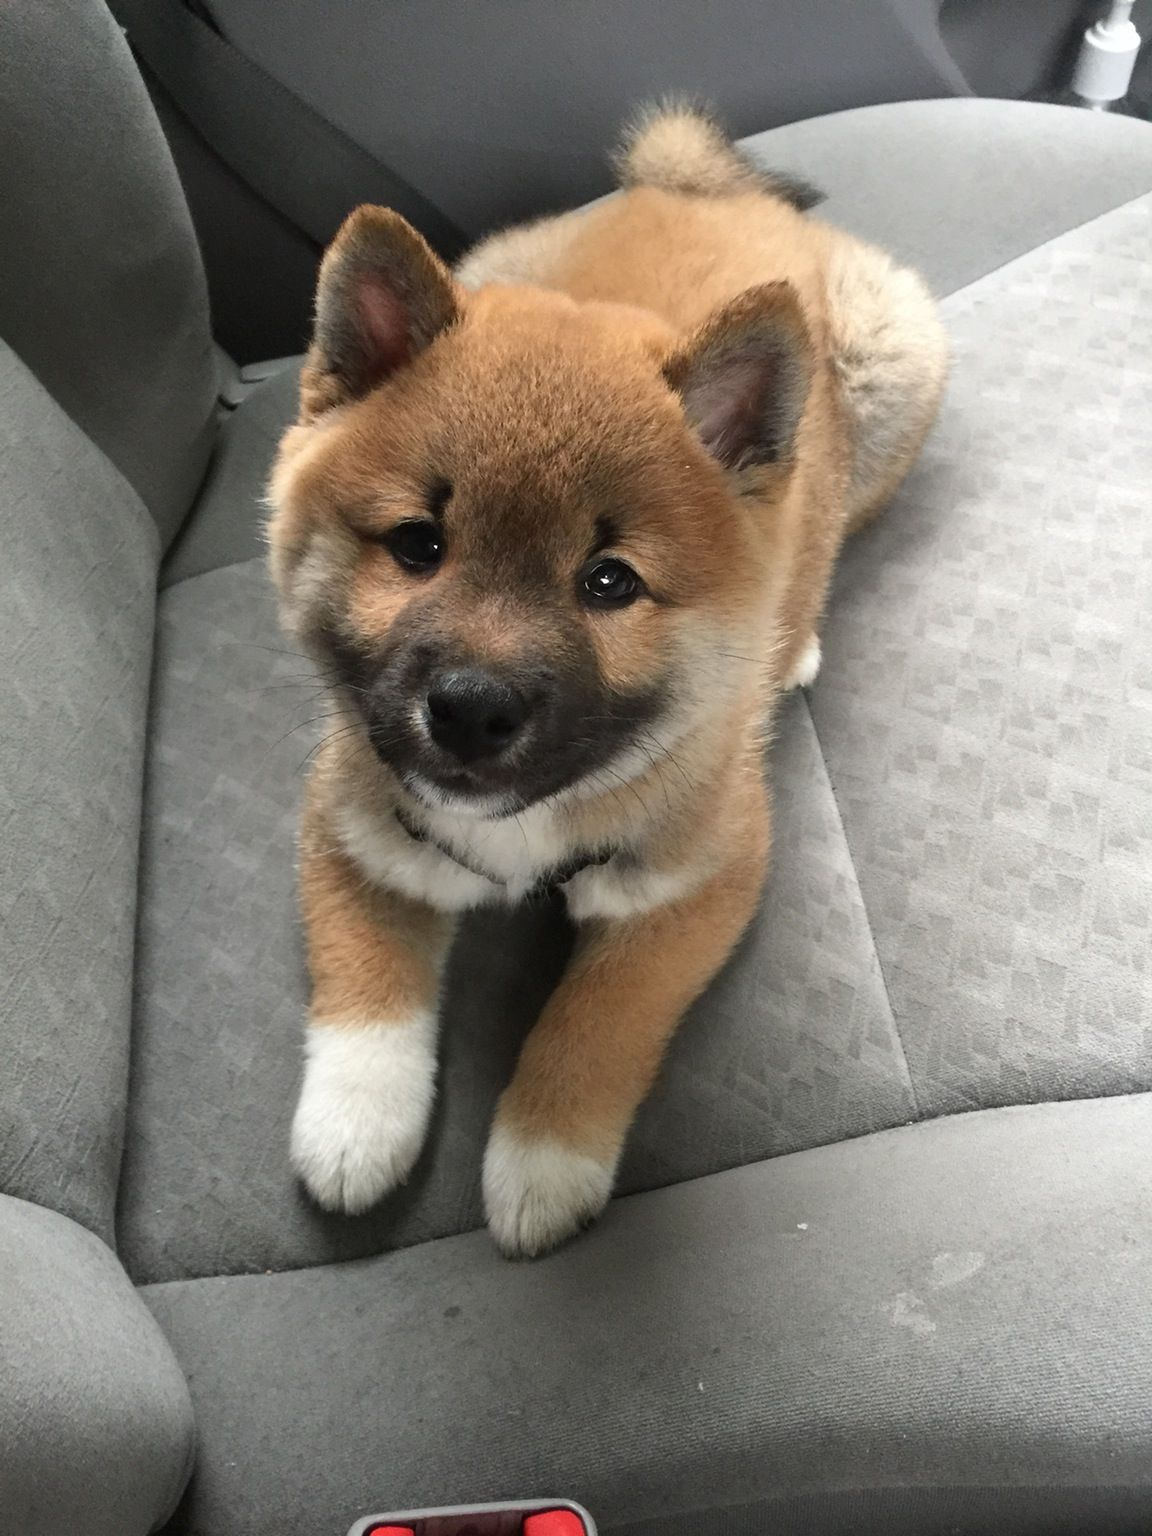 Cutest Shiba Inu Puppy Ask Me Anything Http Ift Tt 2gxh06e Cute Puppies Cute Animals Shiba Inu Puppy